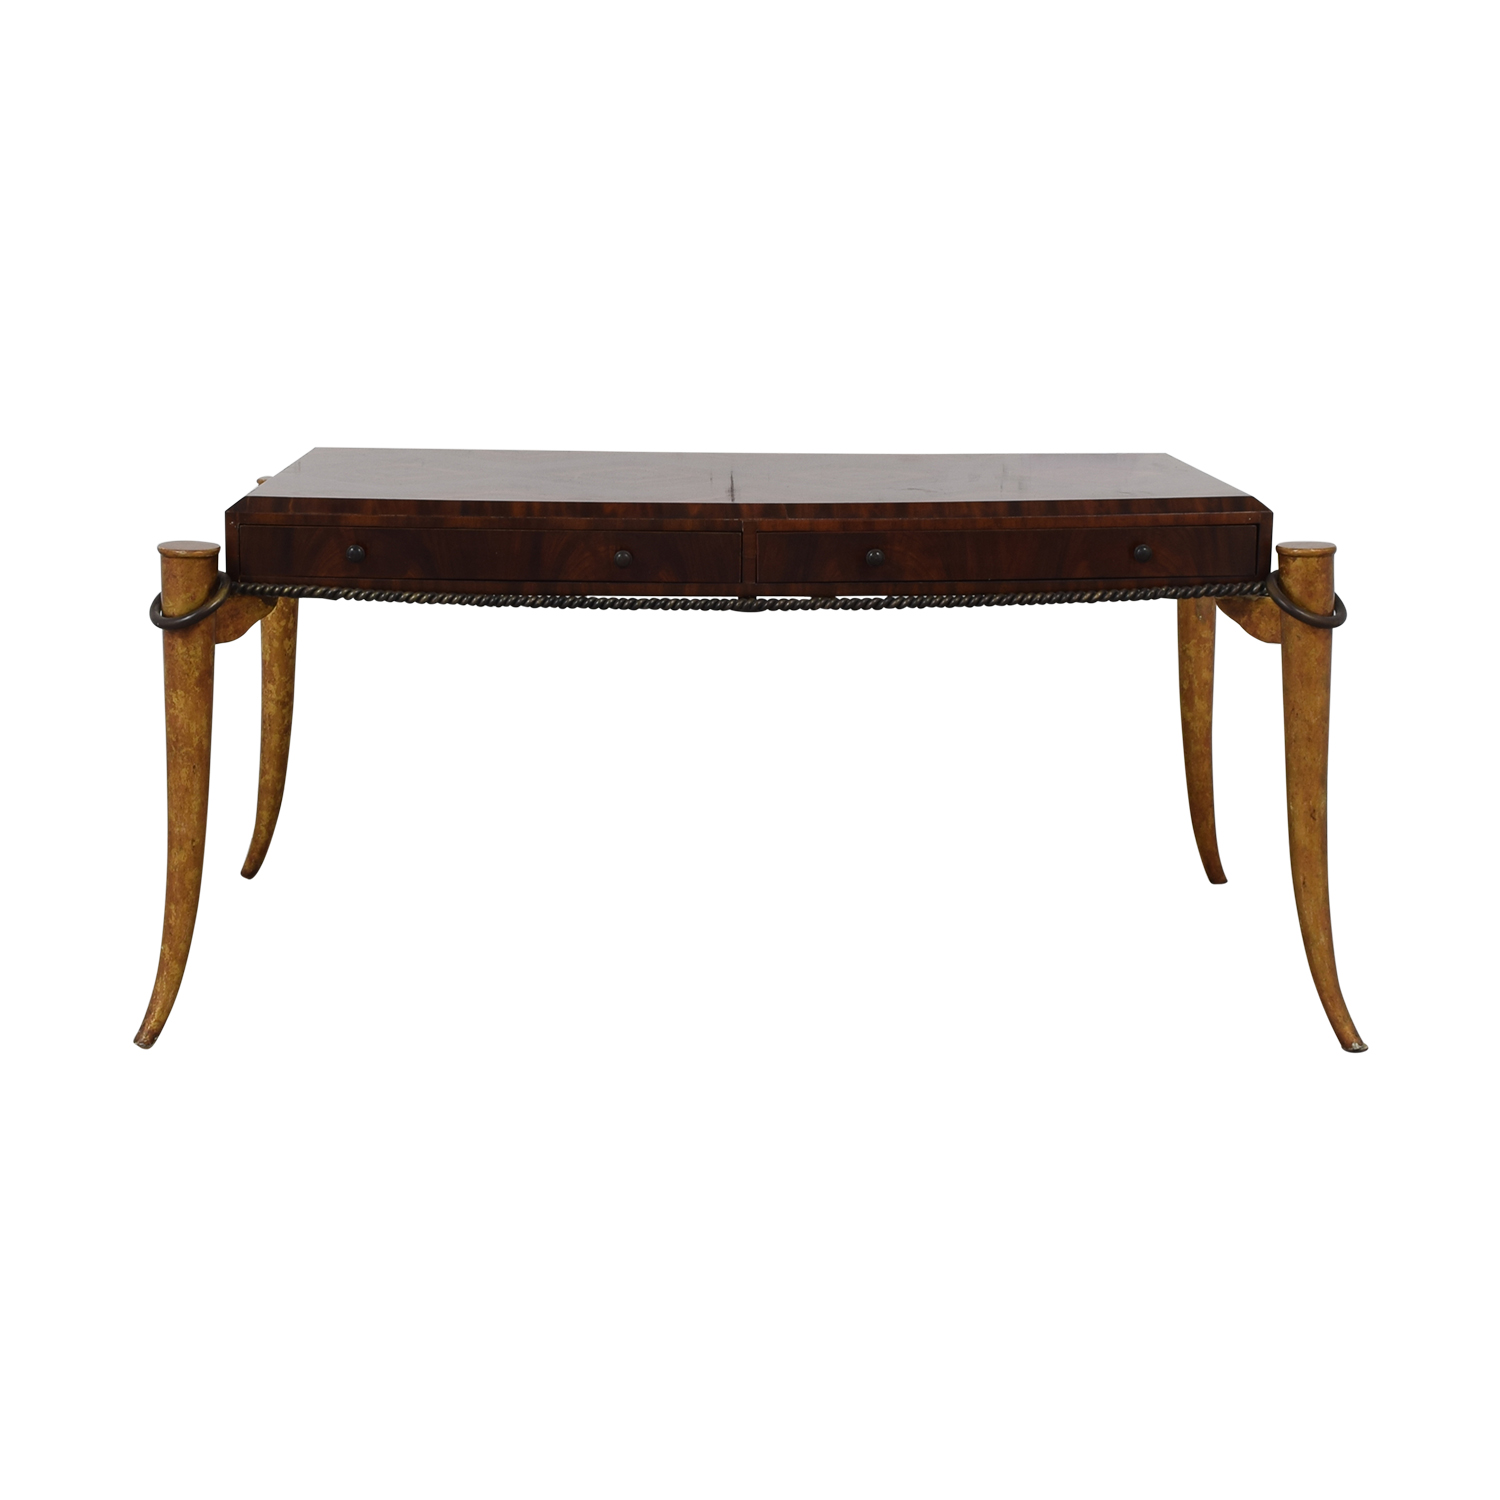 Maitland-Smith Maitland-Smith Rosewood Inlaid Desk